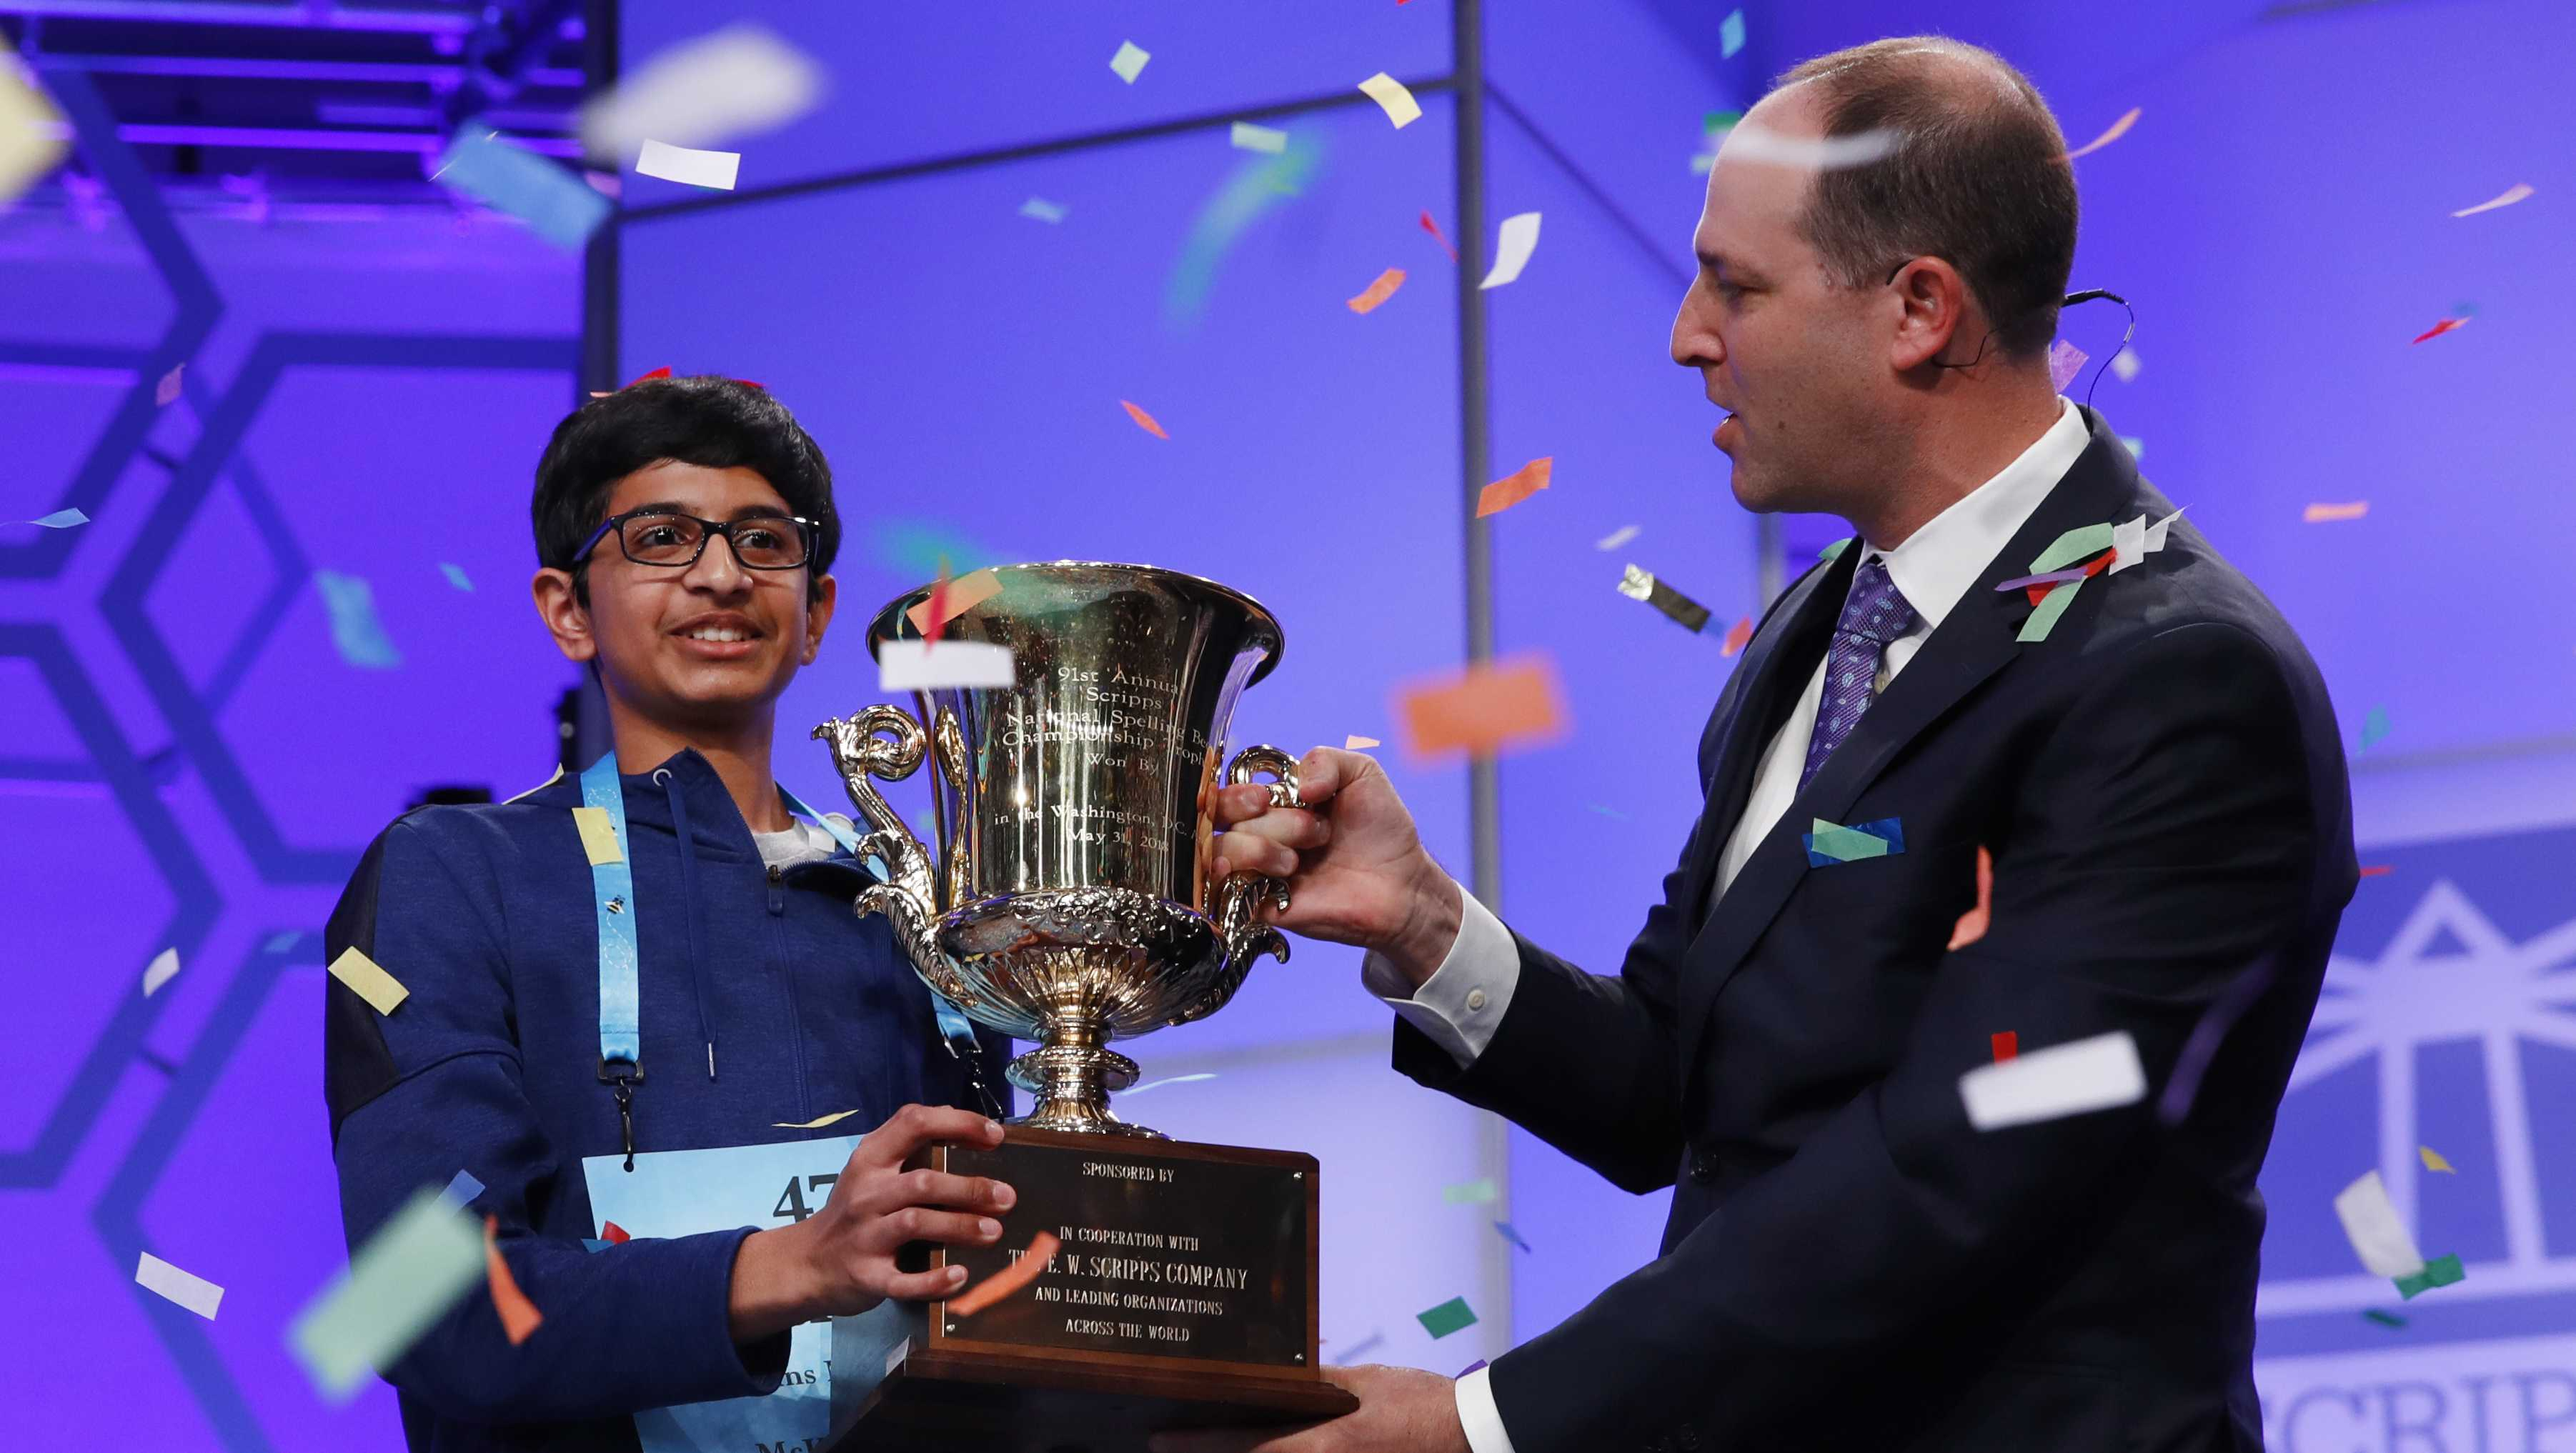 Karthik Nemmani, 14, from McKinney, Texas, left, holds his trophy with President and CEO of the E.W. Scripps Company Adam Symson as confetti falls after winning the Scripps National Spelling Bee in Oxon Hill, Md., Thursday, May 31, 2018.